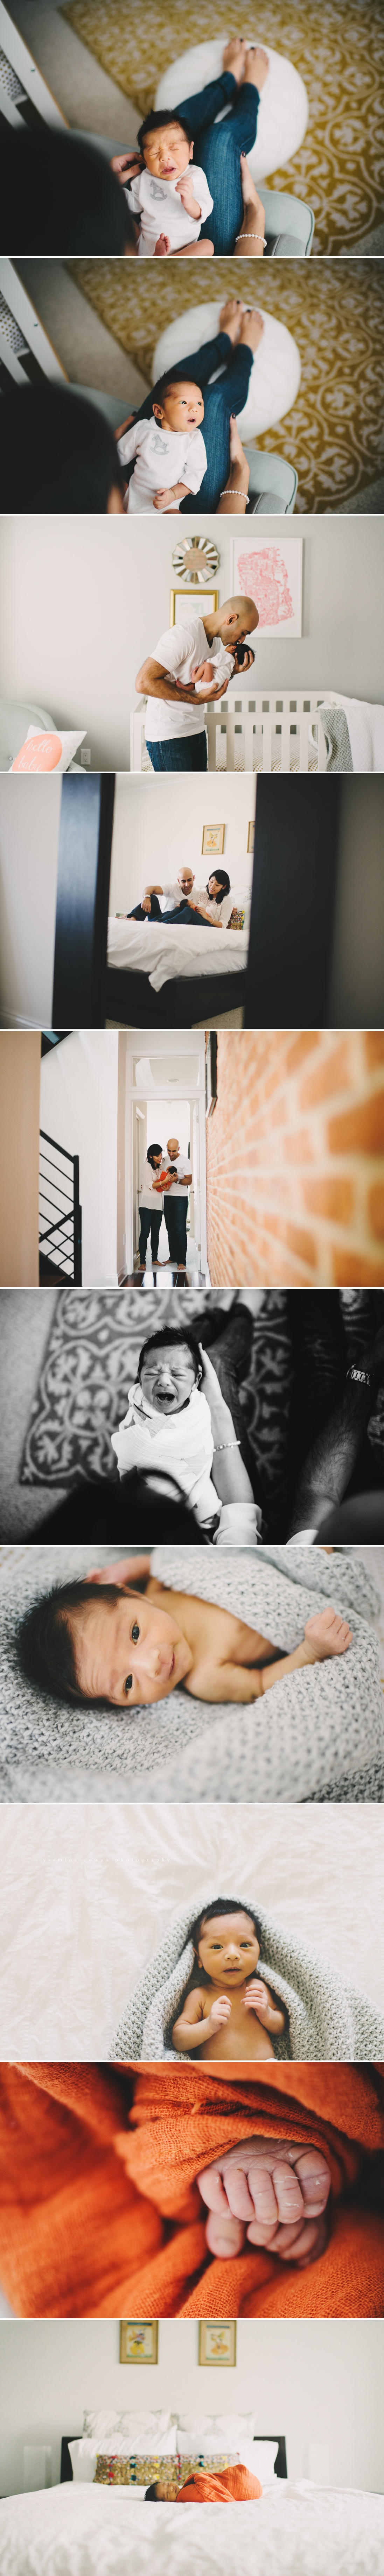 Yasmina Cowan Photography | Baltimore Newborn Lifestyle Photographer